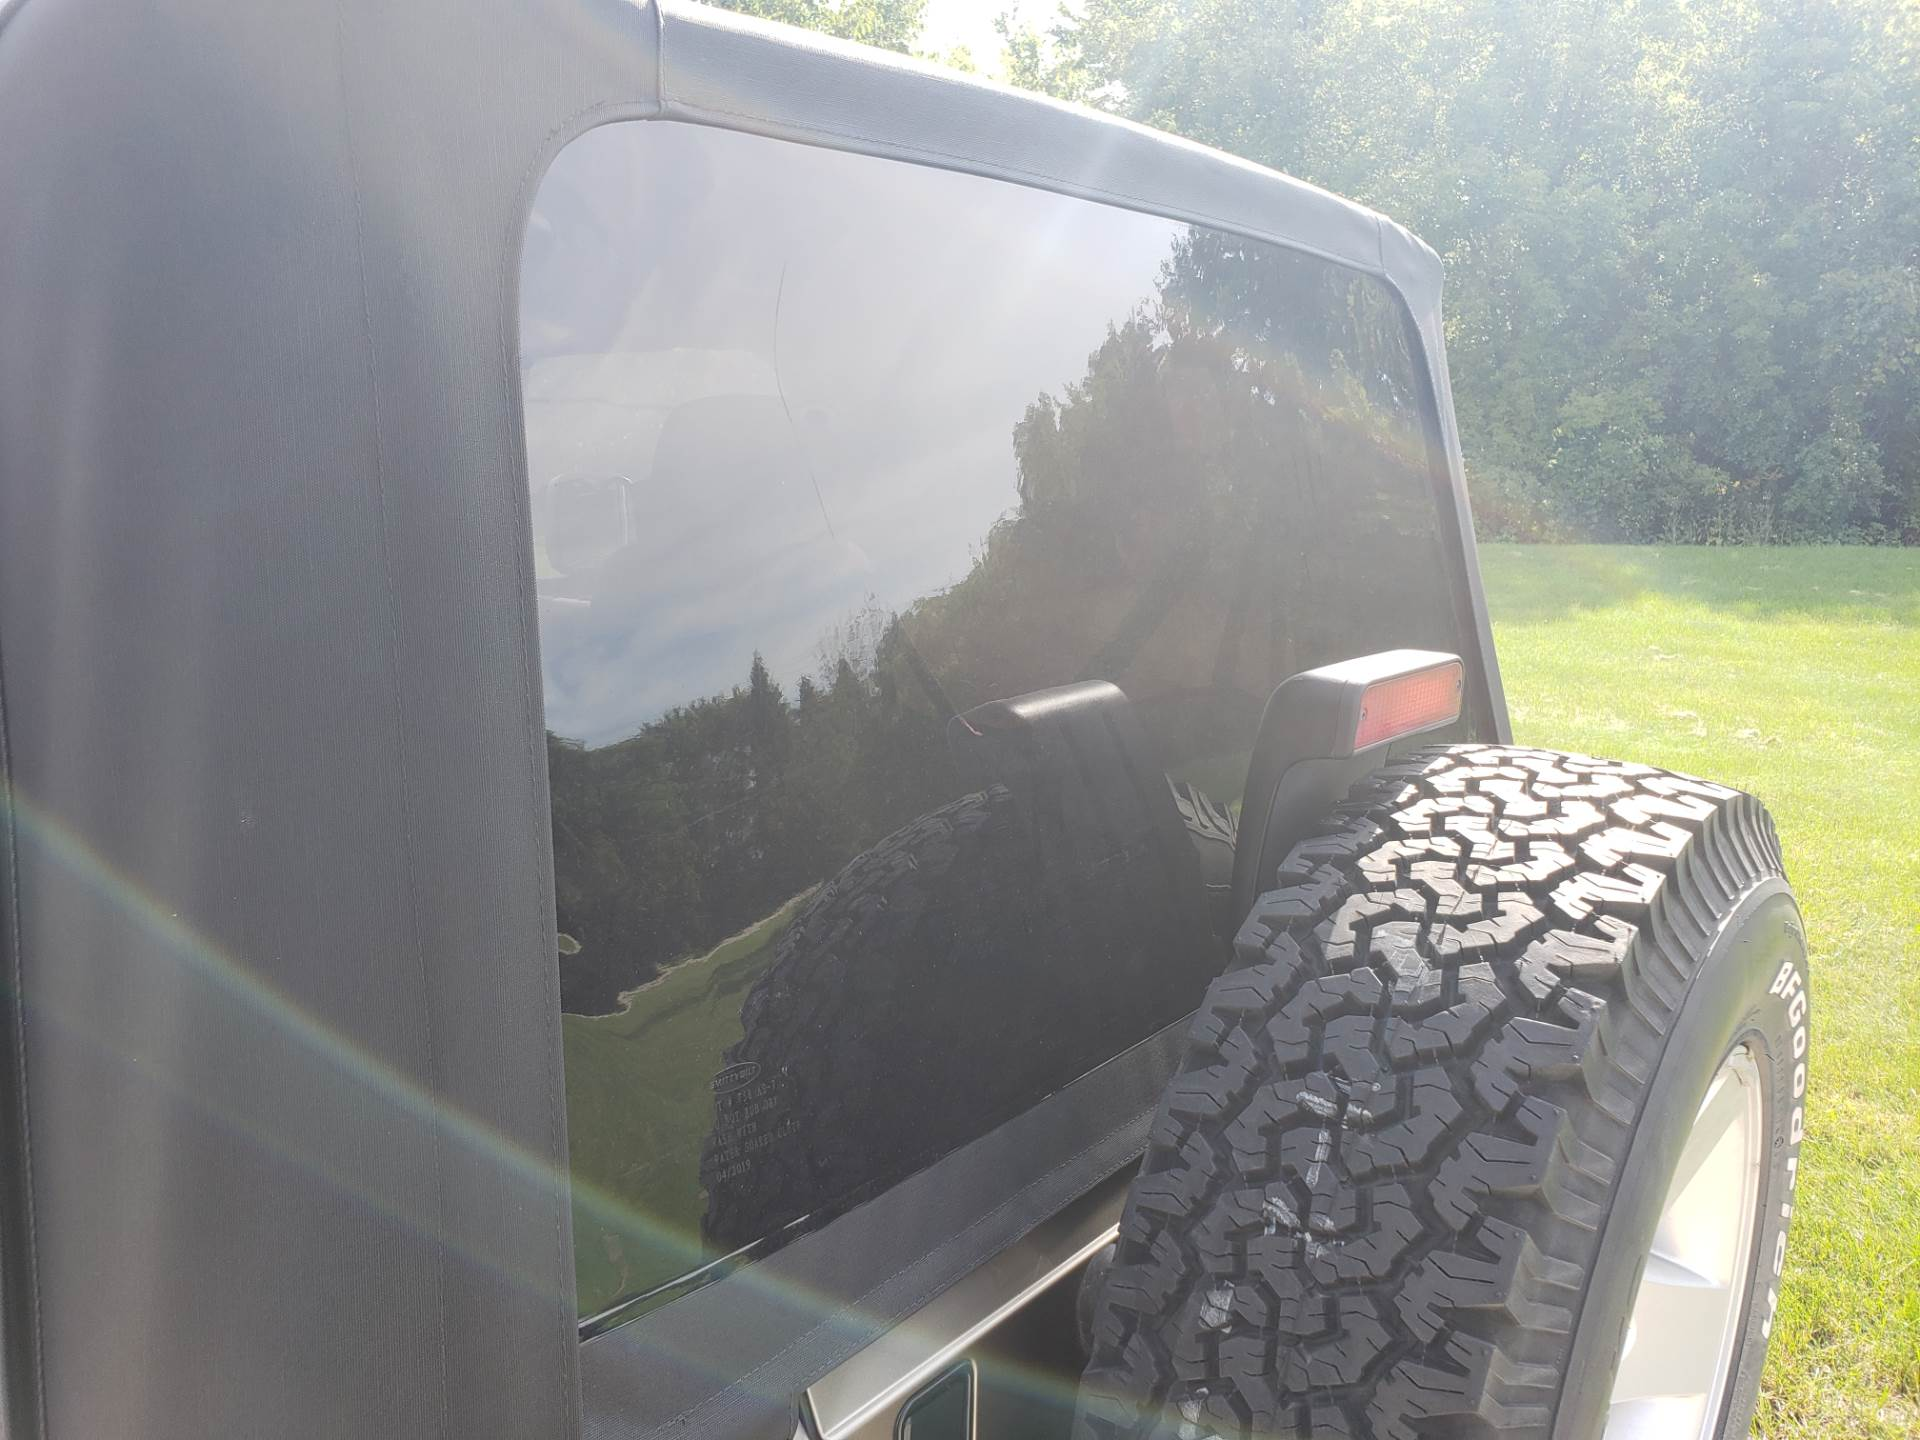 2005 Jeep Wrangler Rubicon 4WD 2dr SUV in Big Bend, Wisconsin - Photo 23